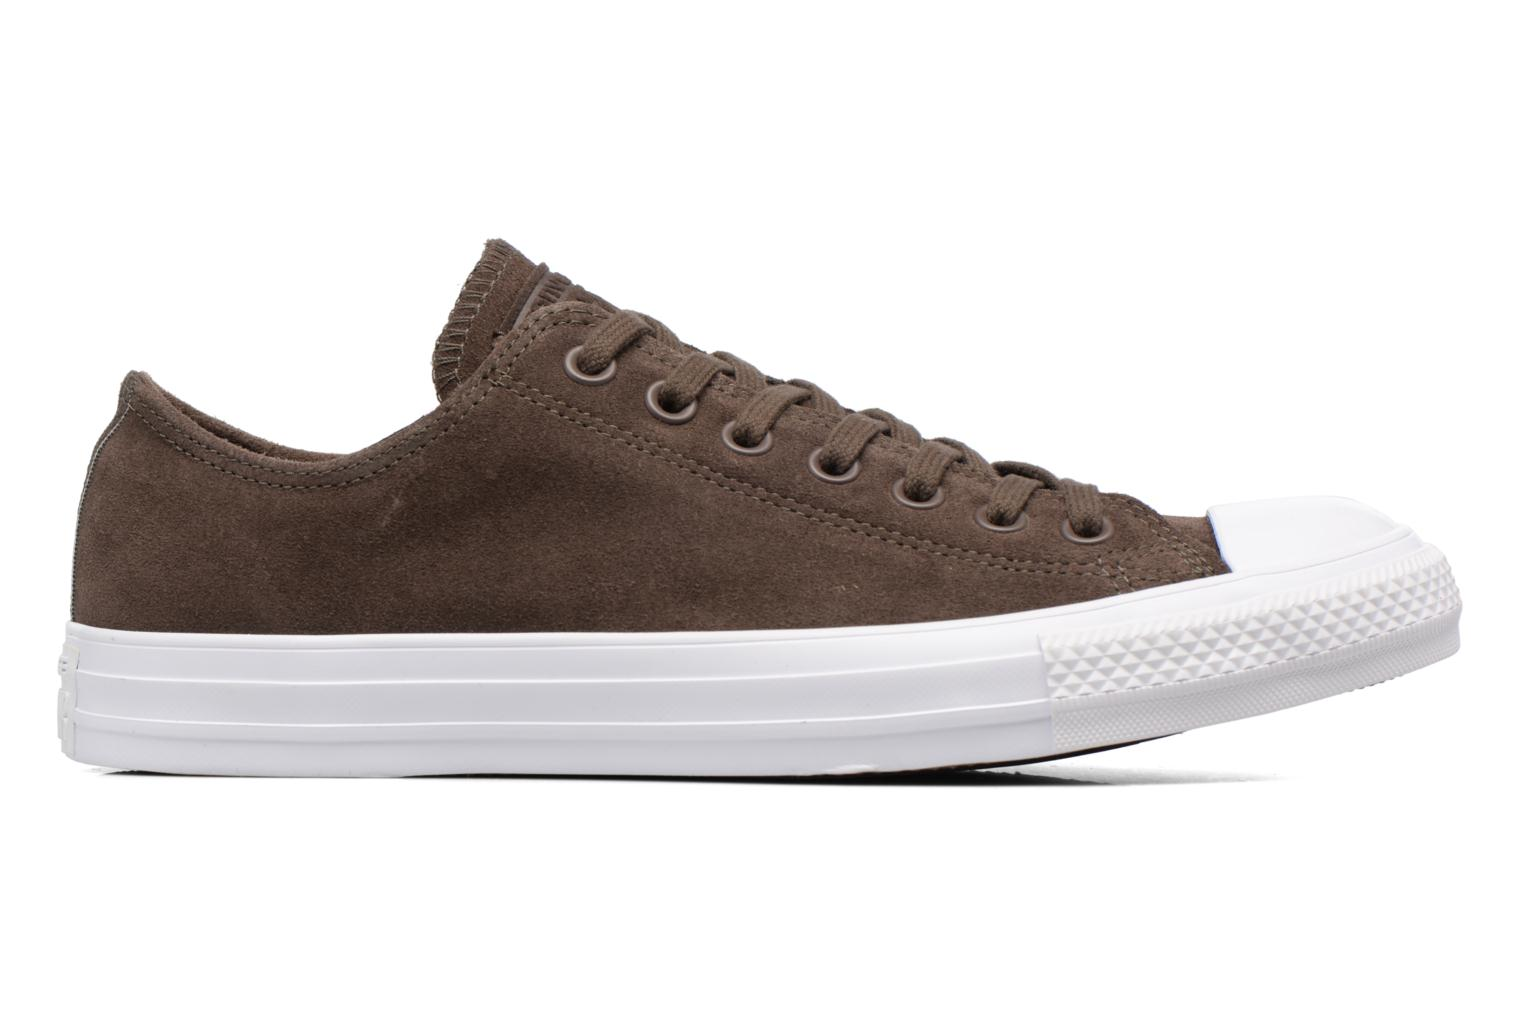 Baskets Converse Chuck Taylor All Star Plush Suede Ox Marron vue derrière